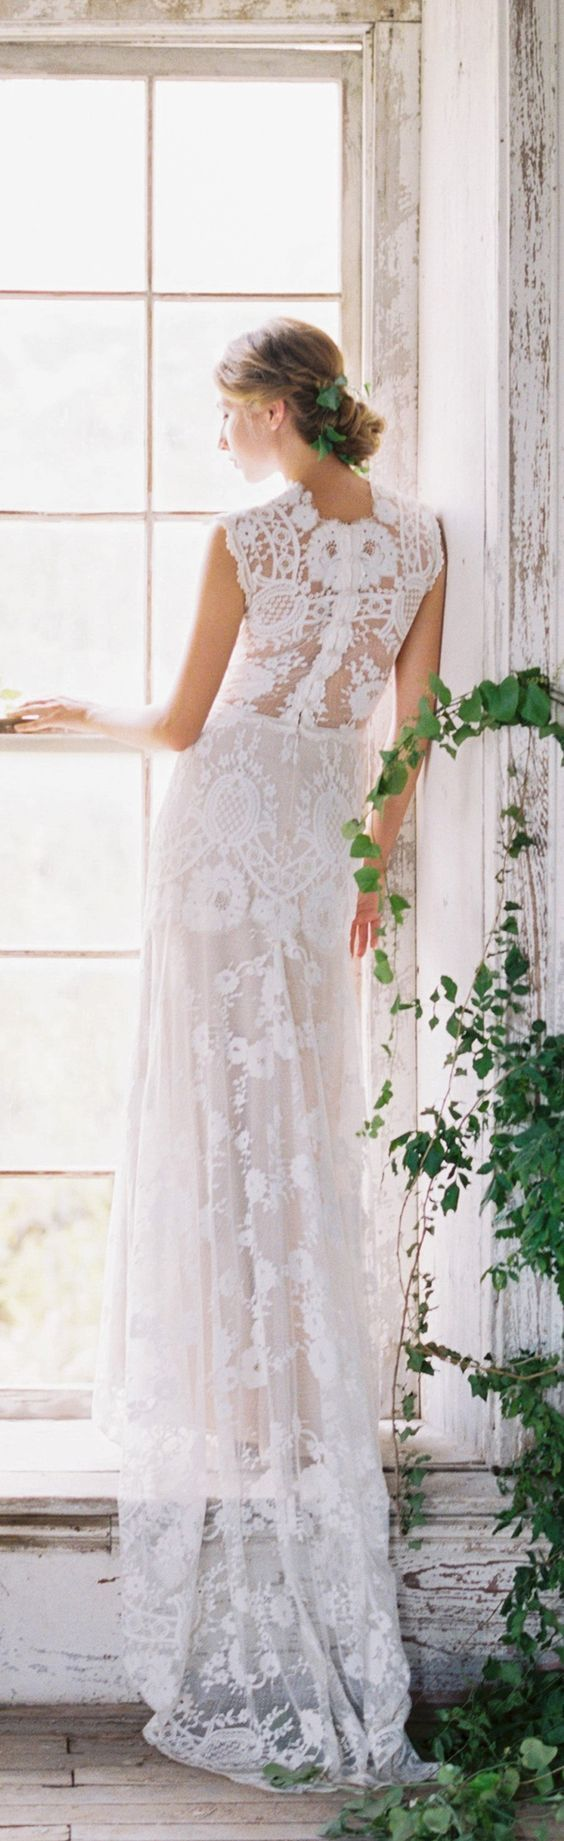 The 508 best Claire Pettibone Wedding Bliss images on Pinterest ...